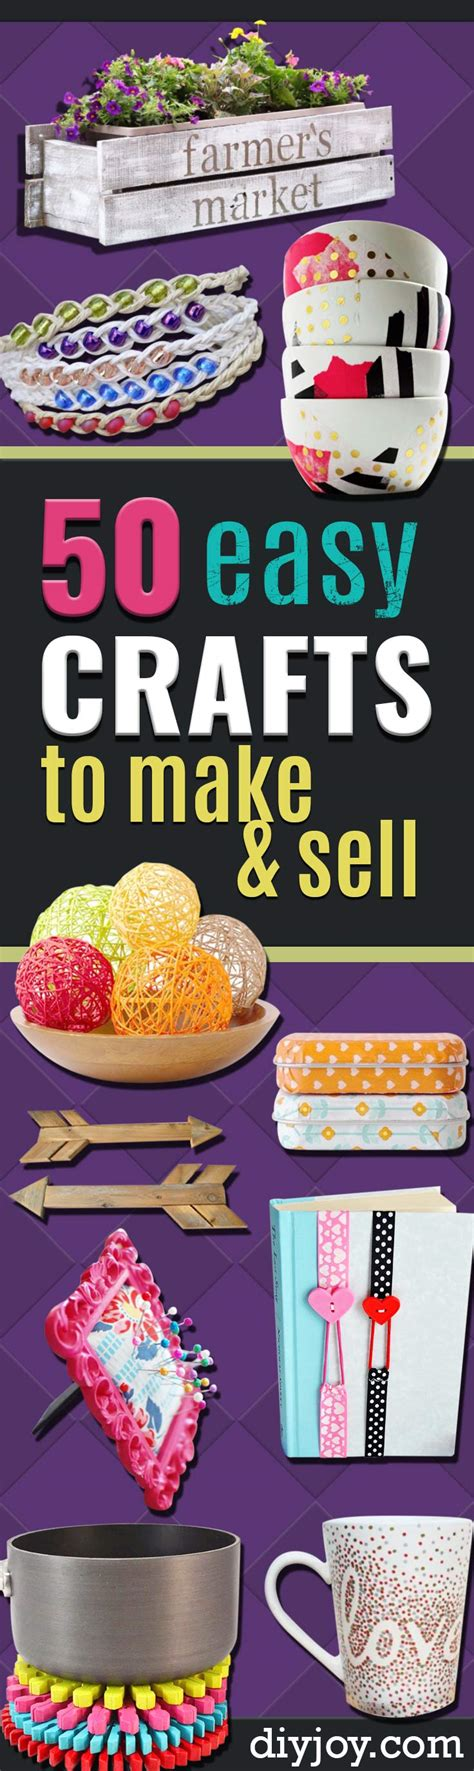 easy crafts for to sell 50 easy crafts to make and sell diy